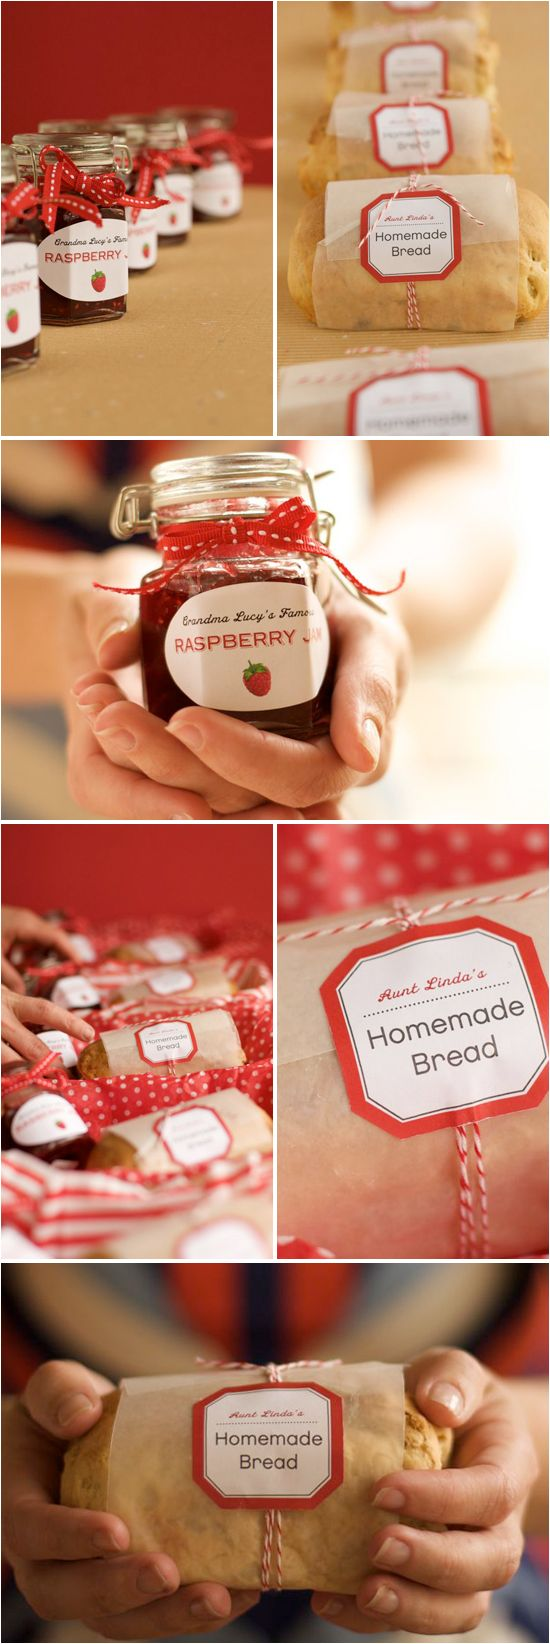 DIY Favors: Homemade Bread and Jam  LOVE this gift idea!!!